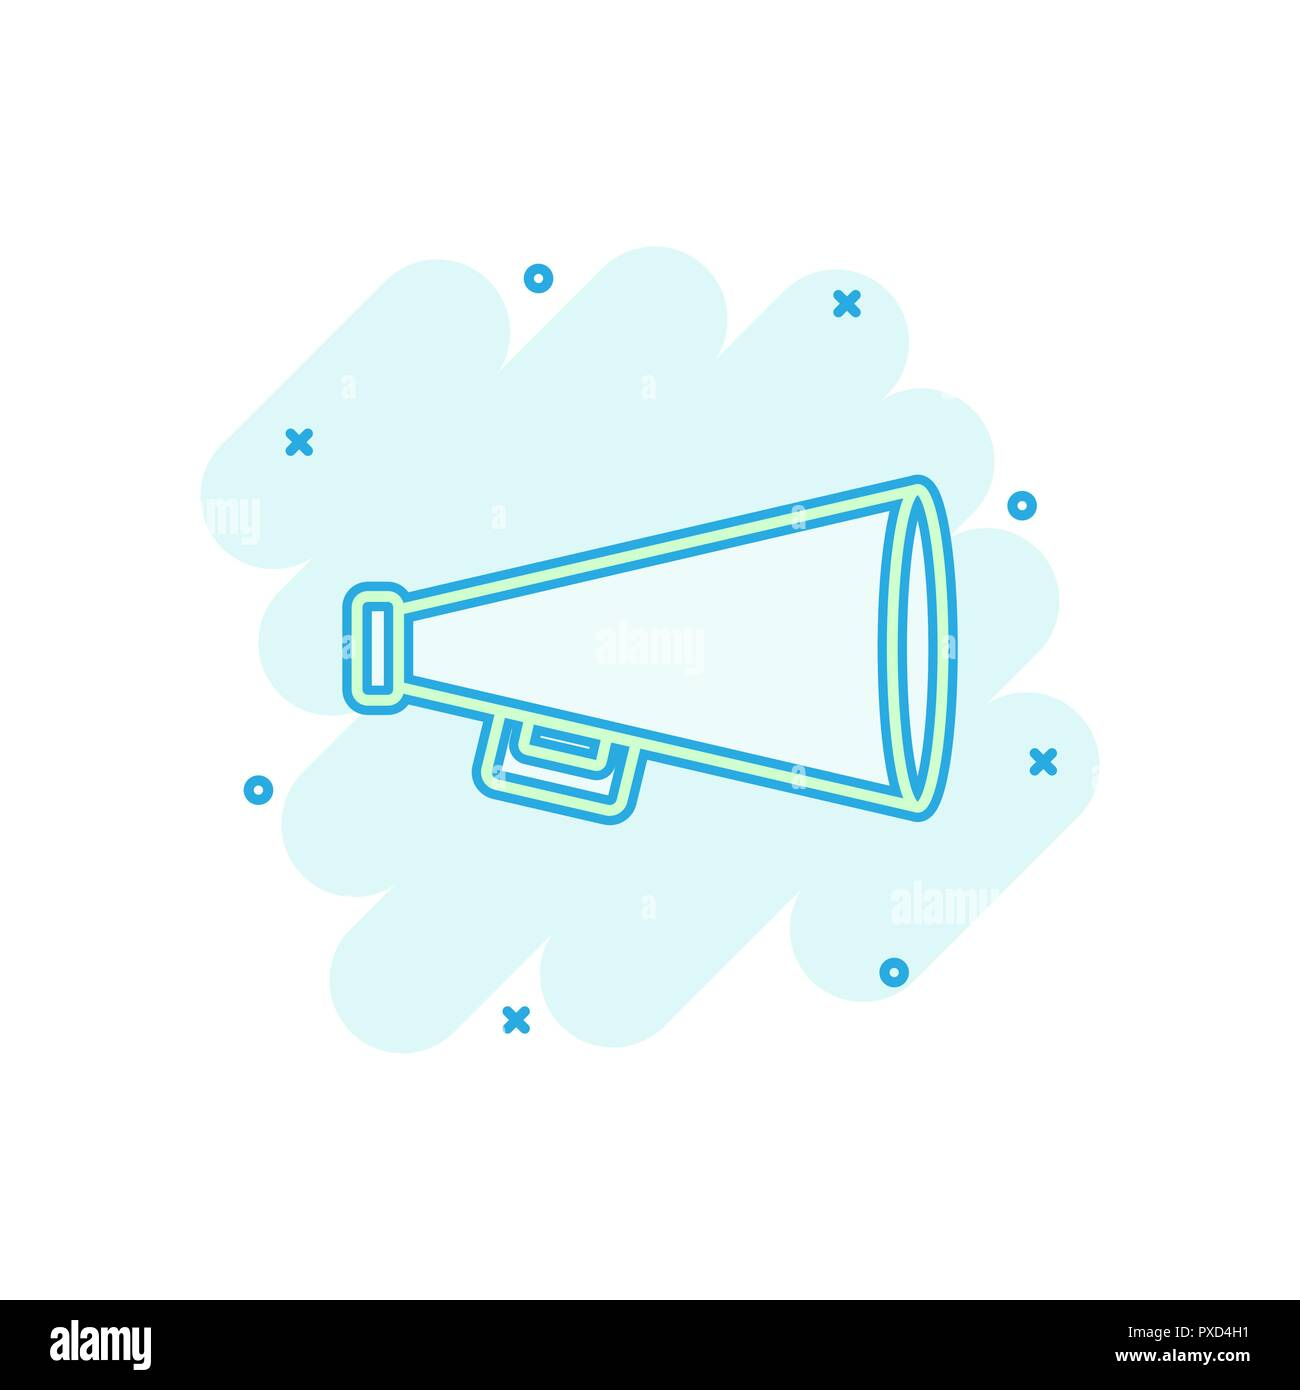 Vector cartoon megaphone icon in comic style. Bullhorn sign illustration pictogram. Megaphone business splash effect concept. - Stock Vector